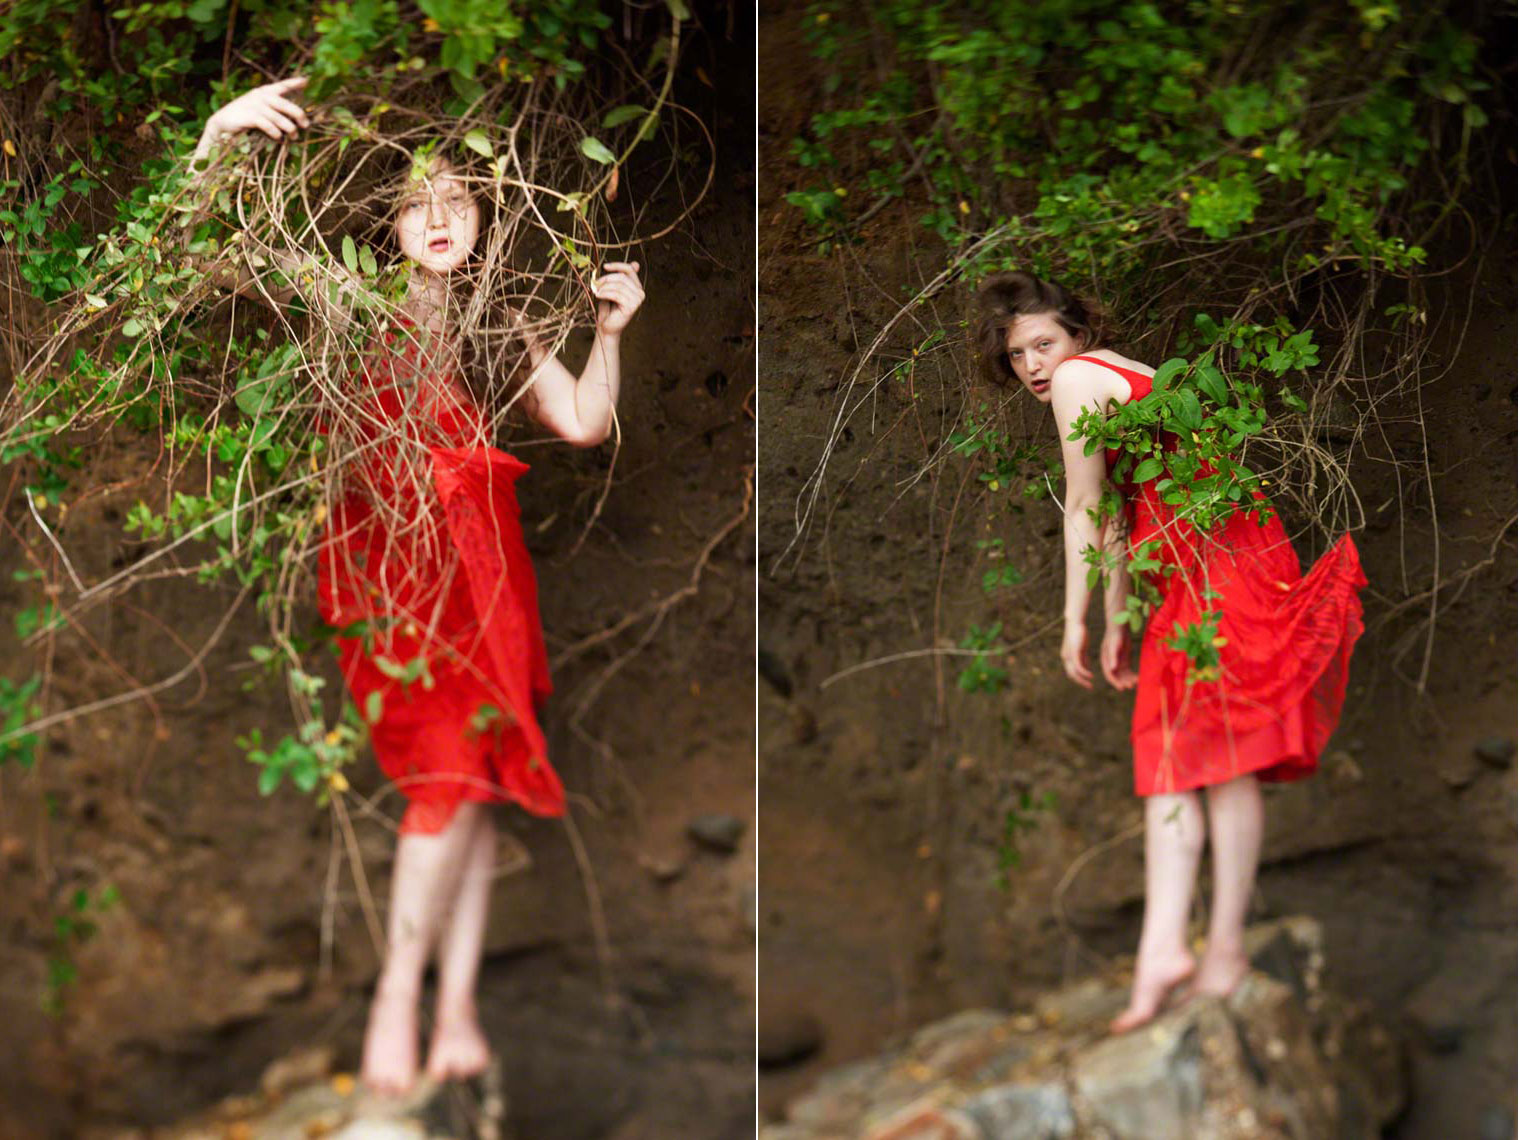 Katie Marie in vintage red dress entwined with tree branches photographed by David Murcko.